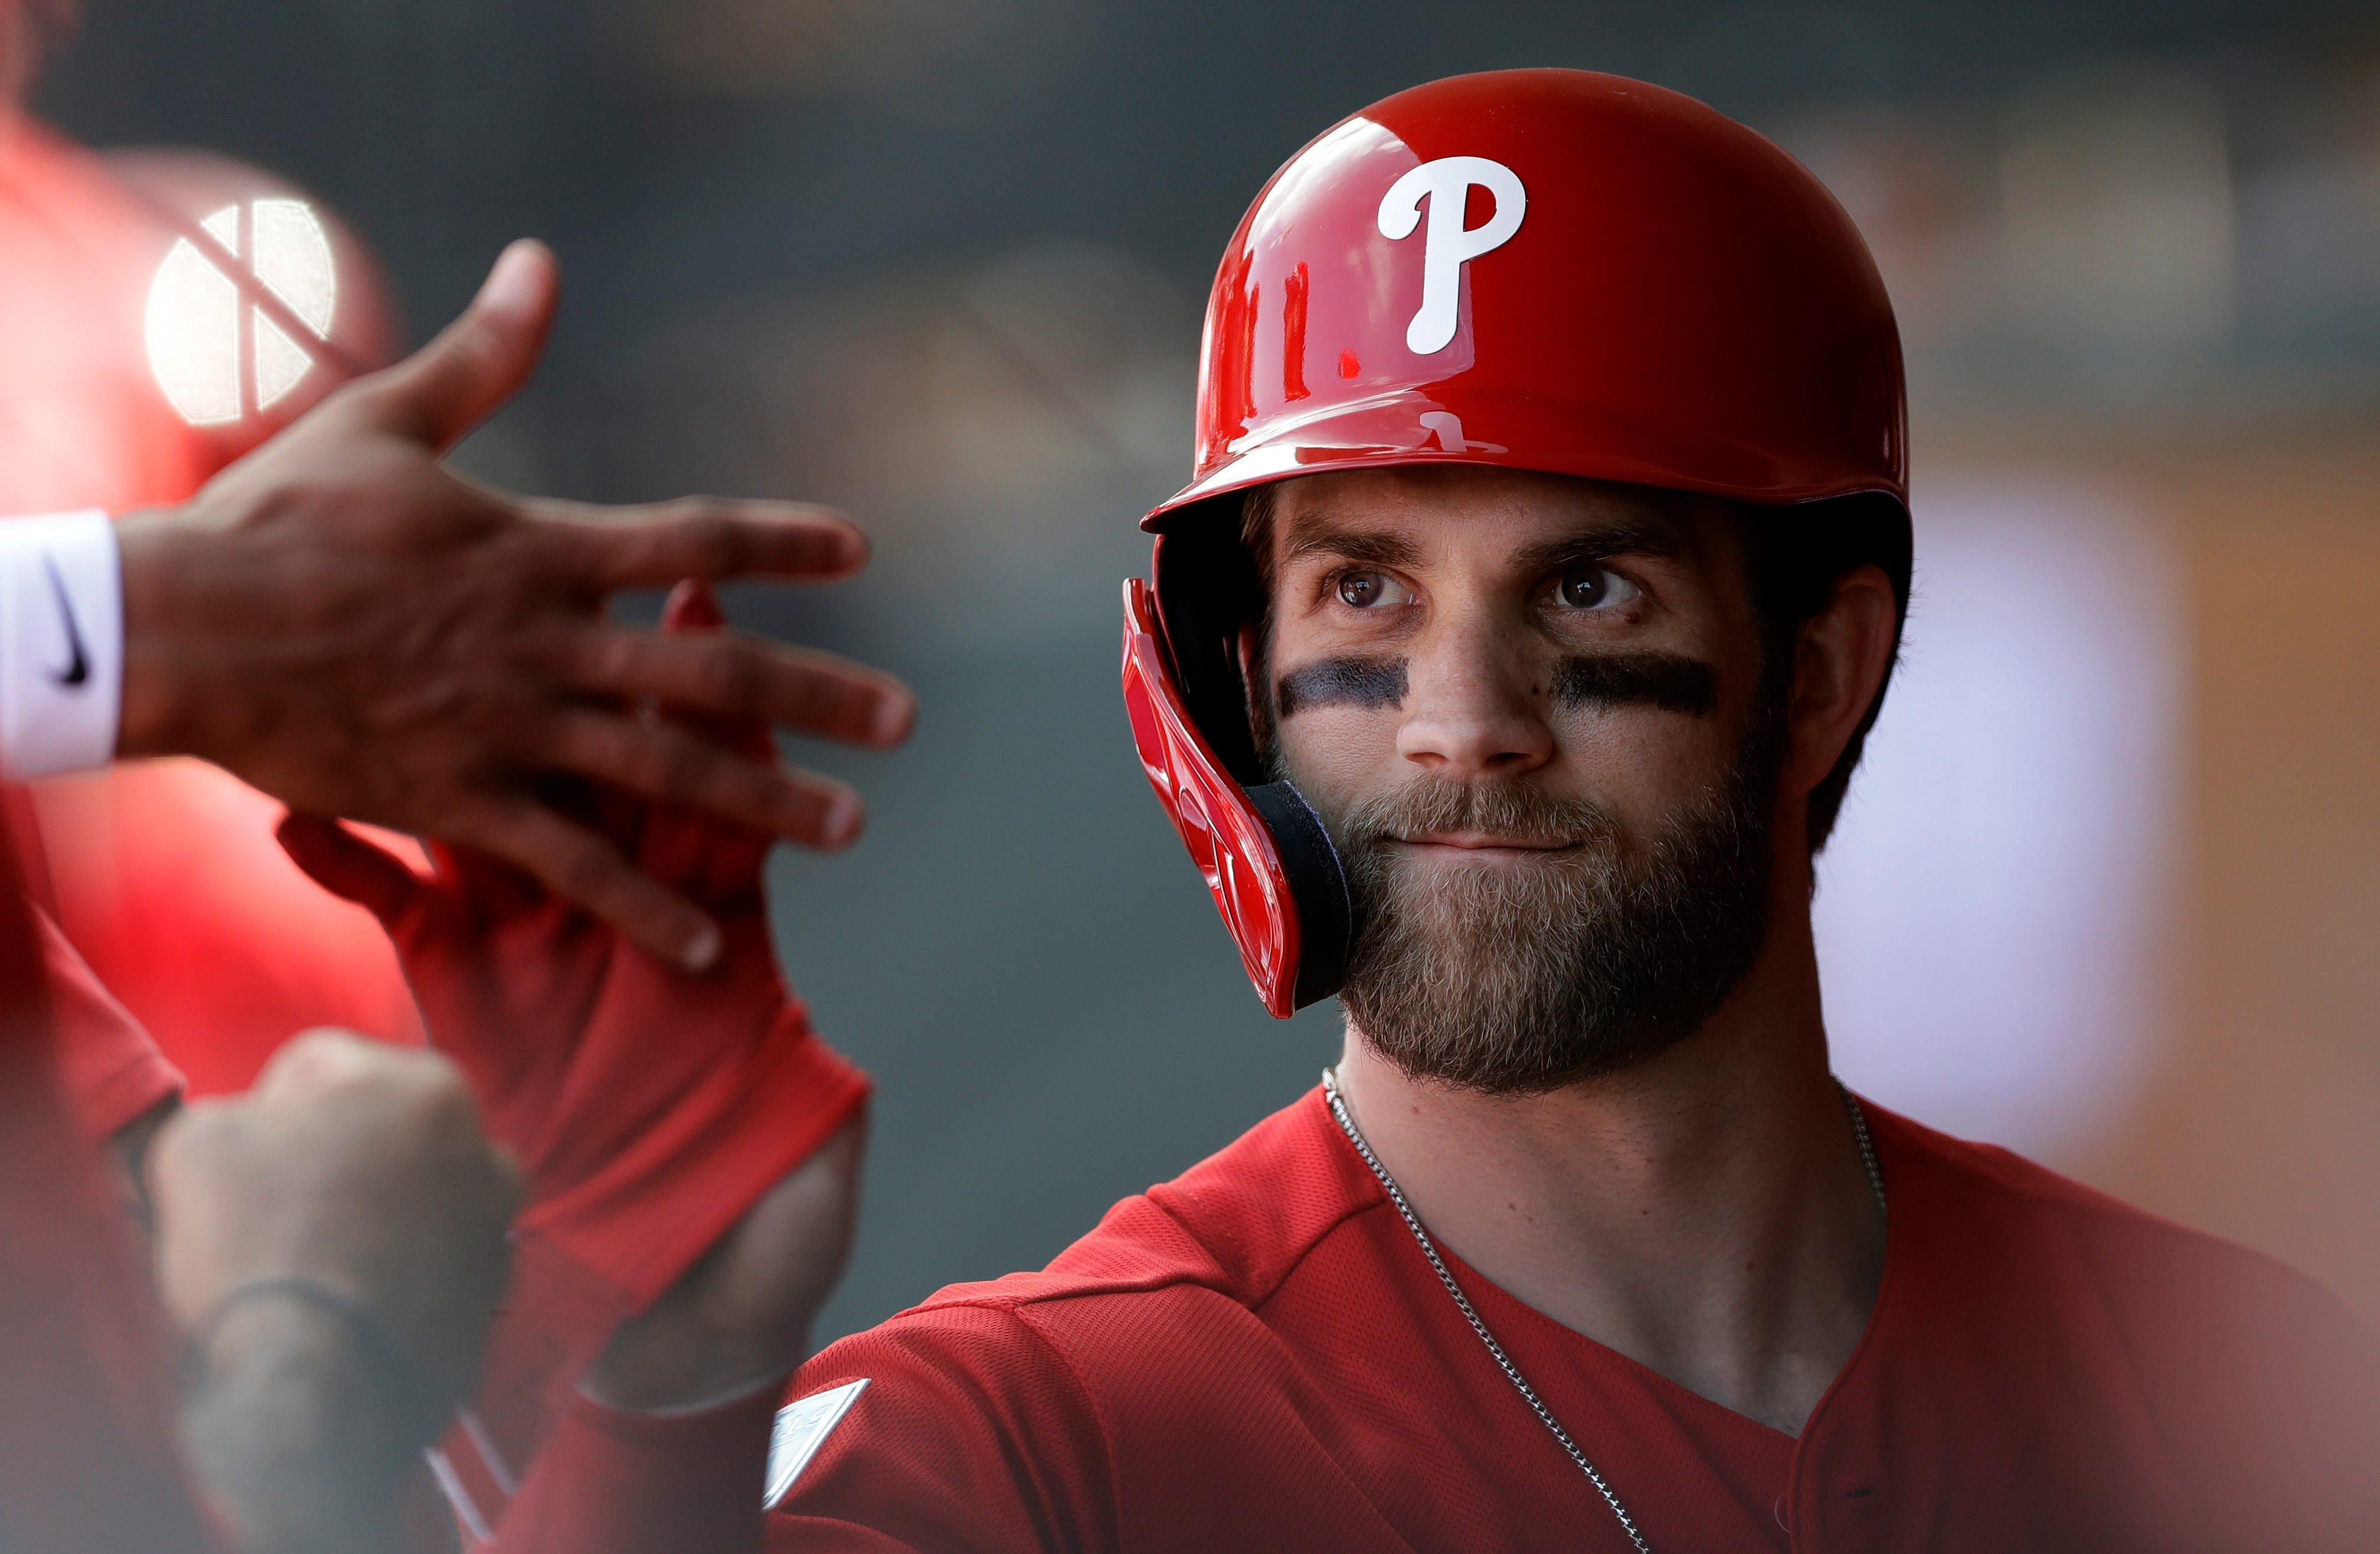 Phillies star Harper hit by 96 mph pitch in ankle, limps off